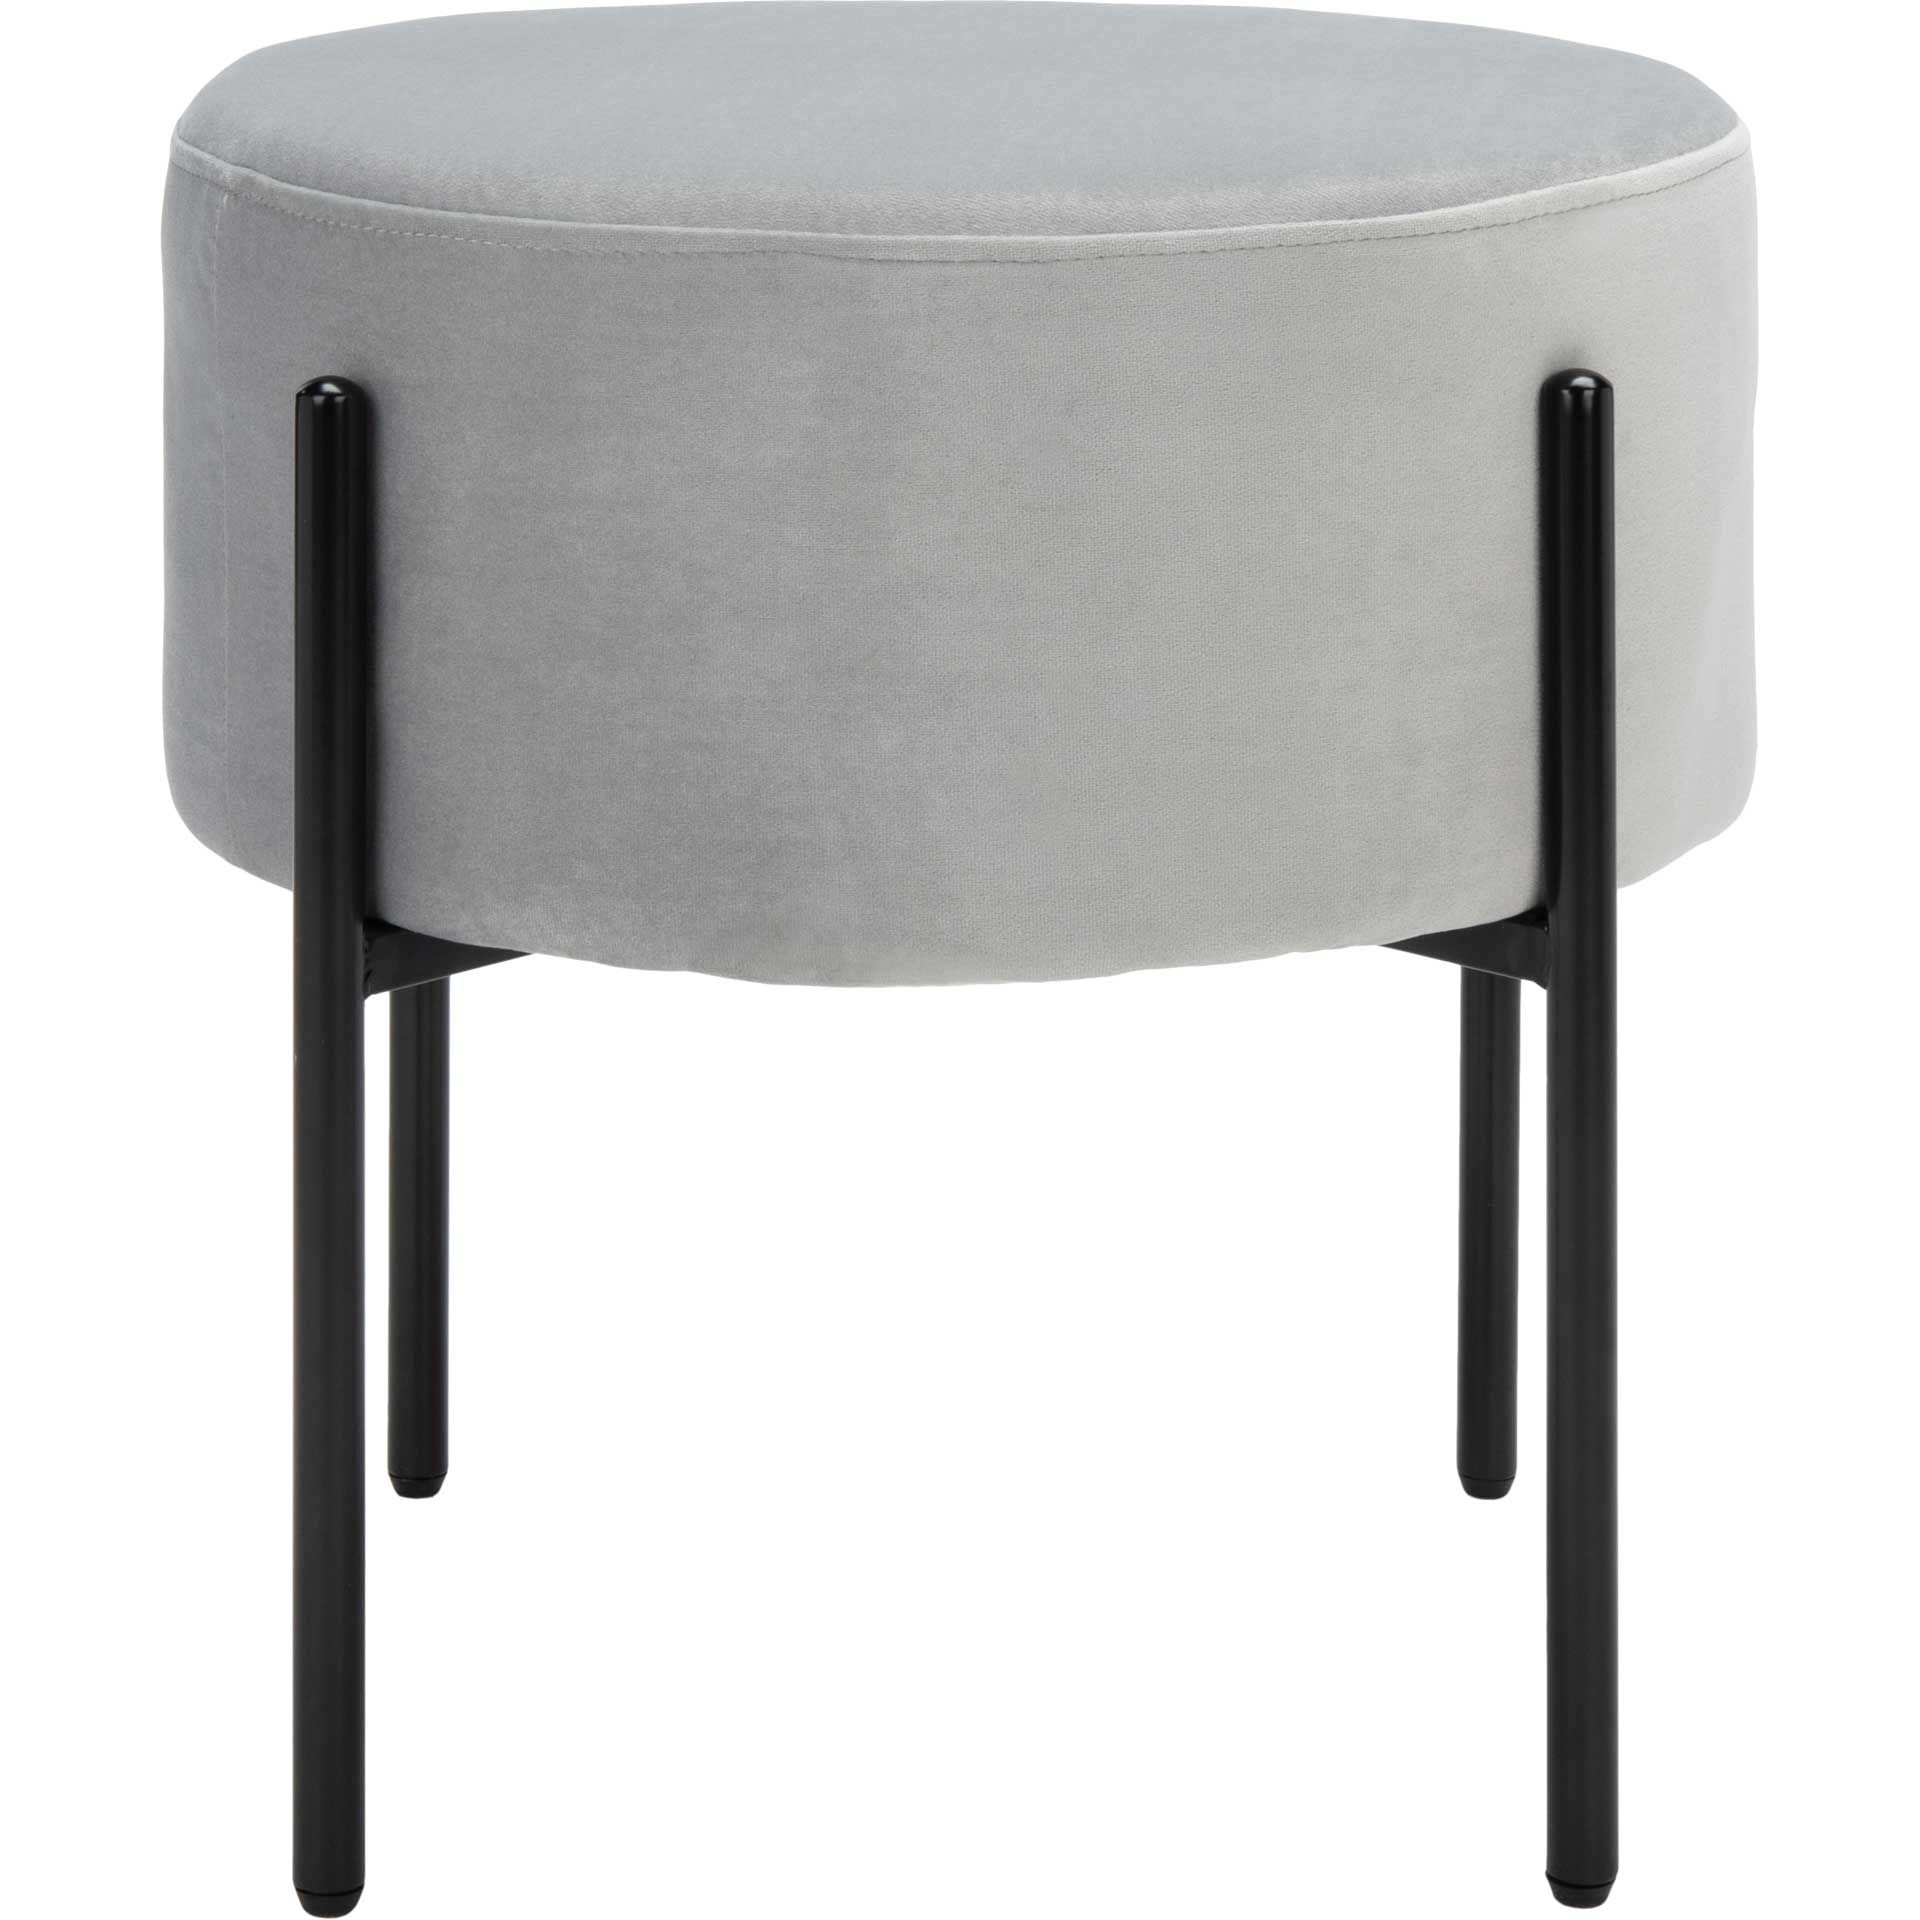 Lincoln Round Ottoman Gray/Black